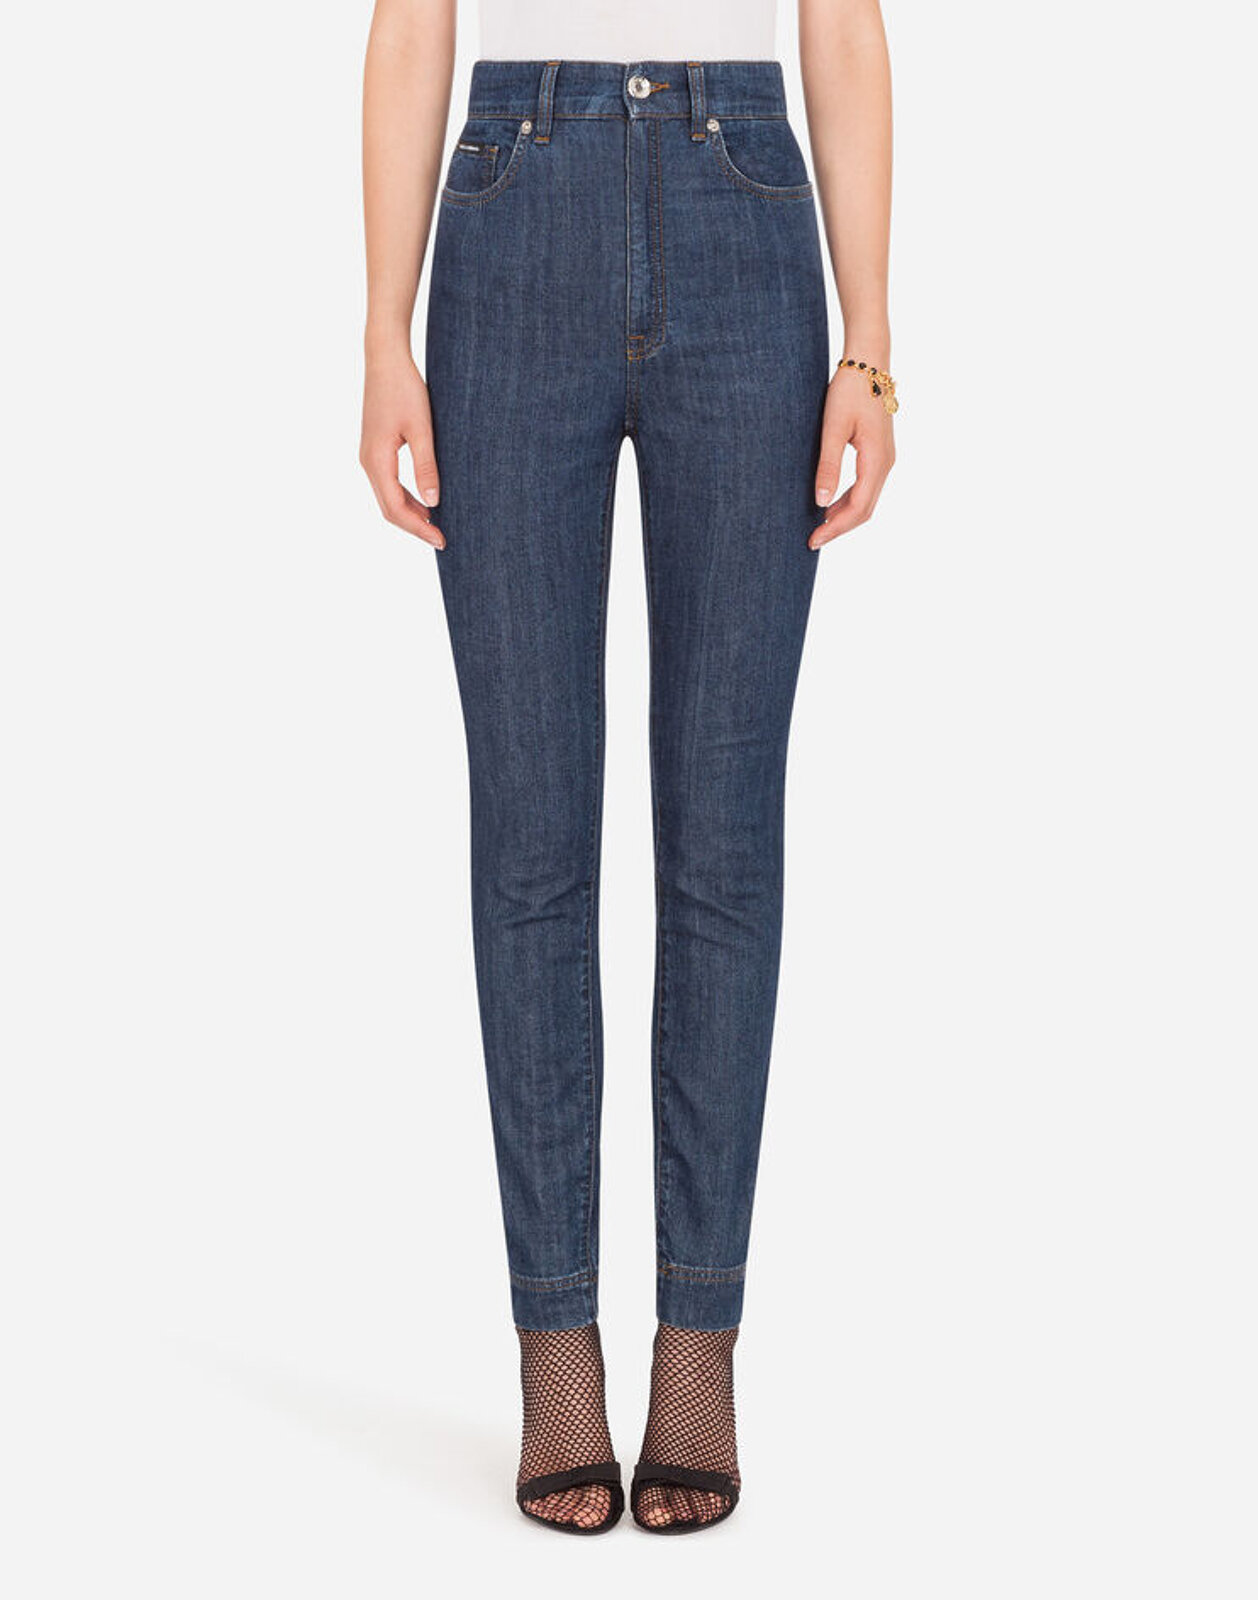 Jeans Vita Alta In Denim Stretch - Dolce & Gabbana